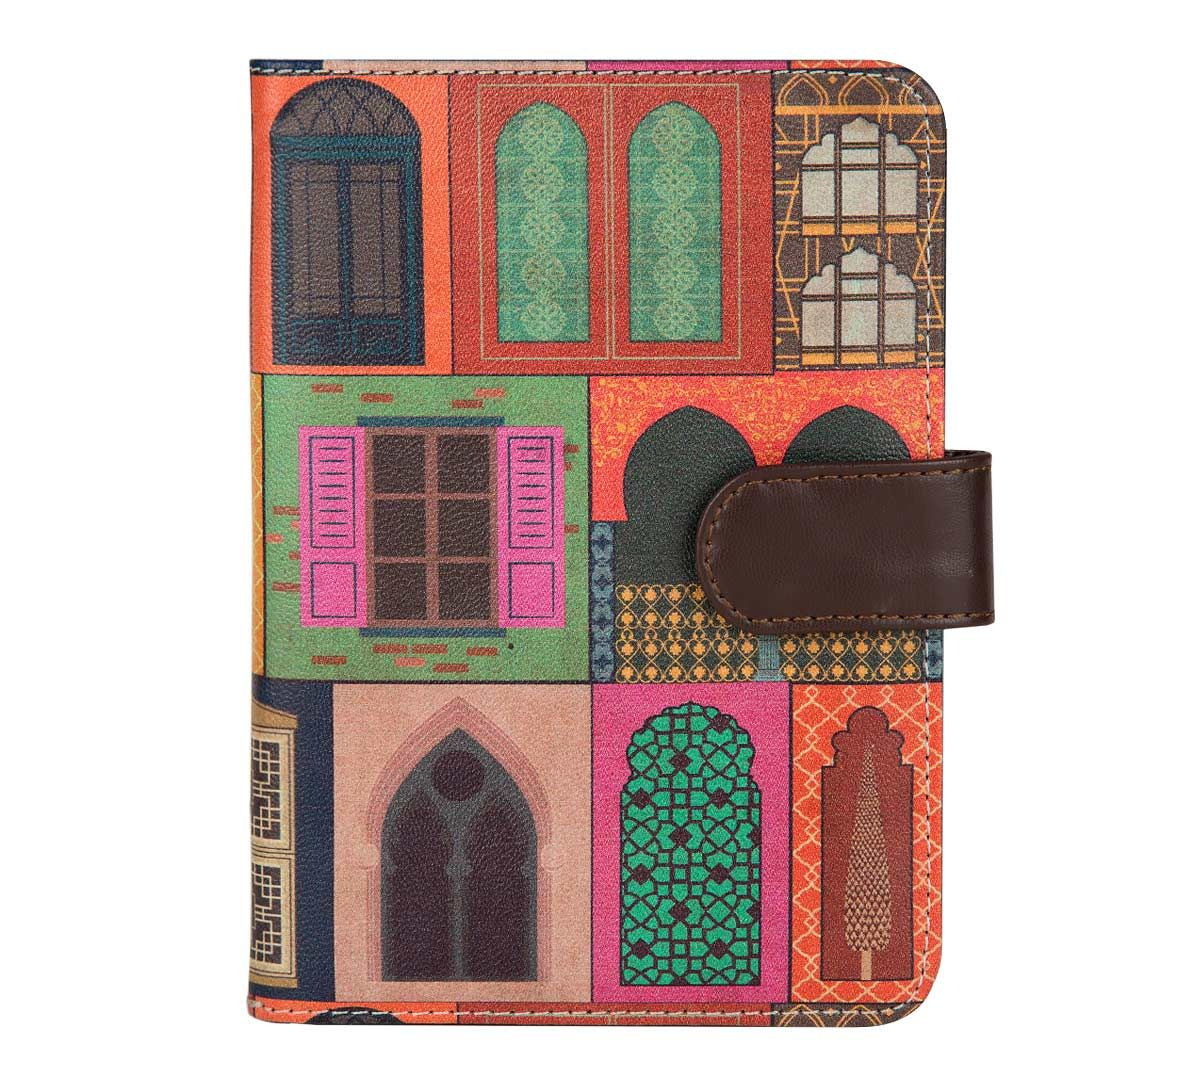 429438c4e India Circus Mughal Doors Reiteration Passport Cover. Tap to expand